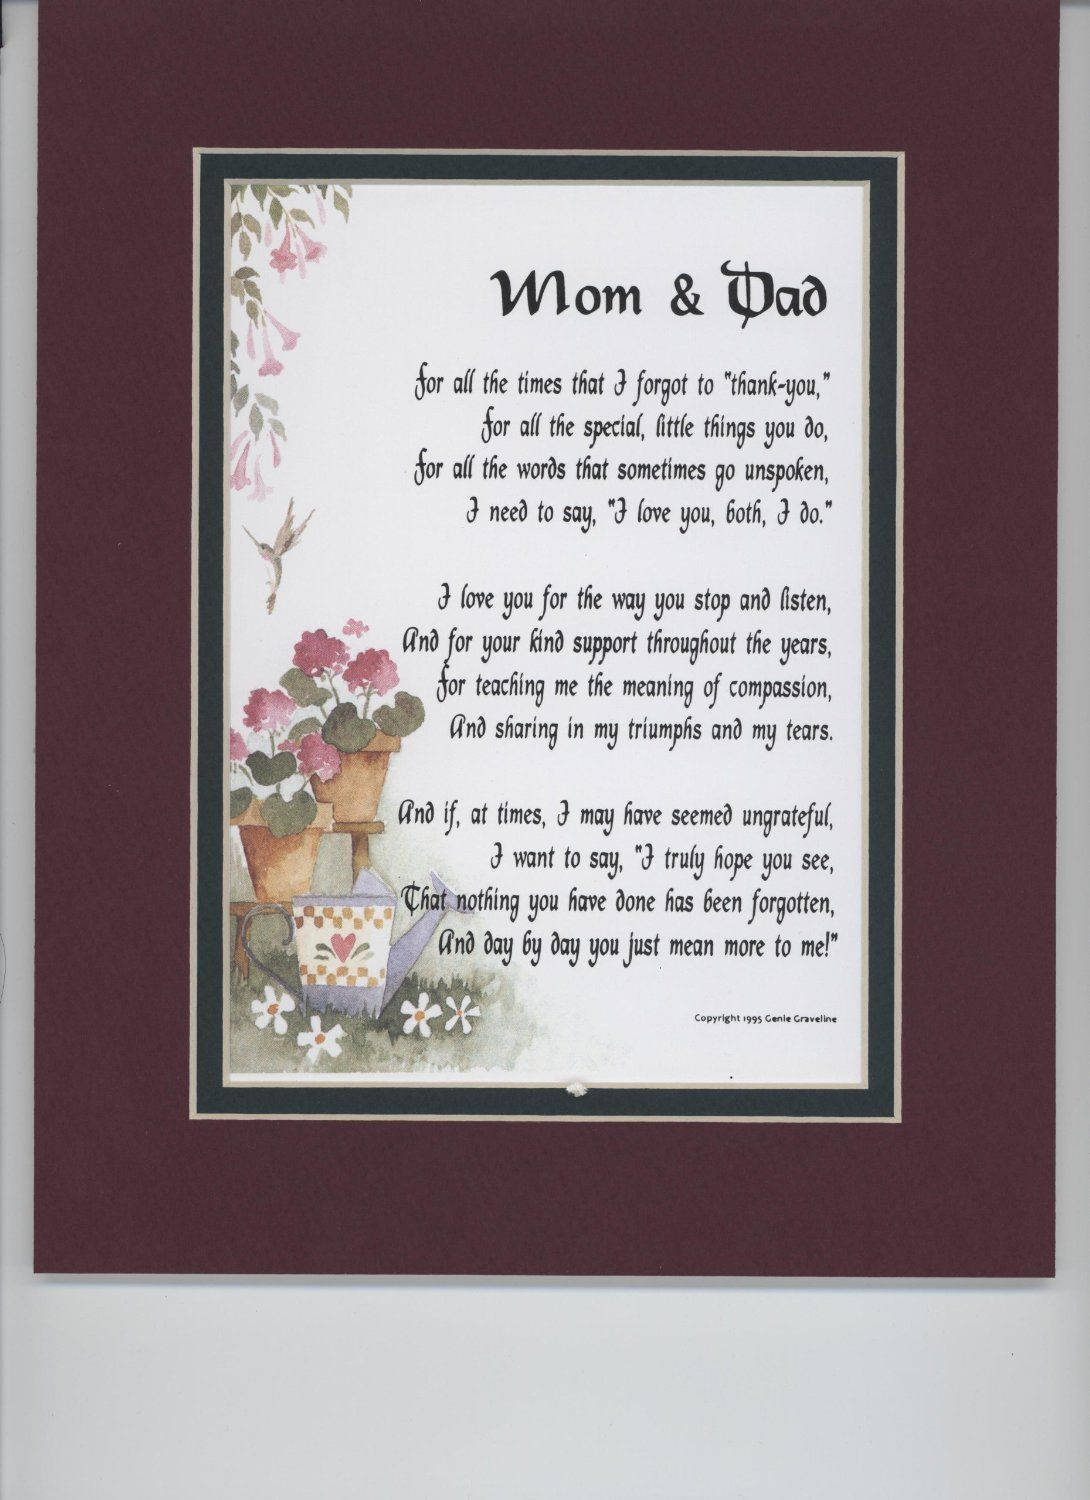 heavenly anniversary poems Special 30th Wedding Anniversary Gifts ...